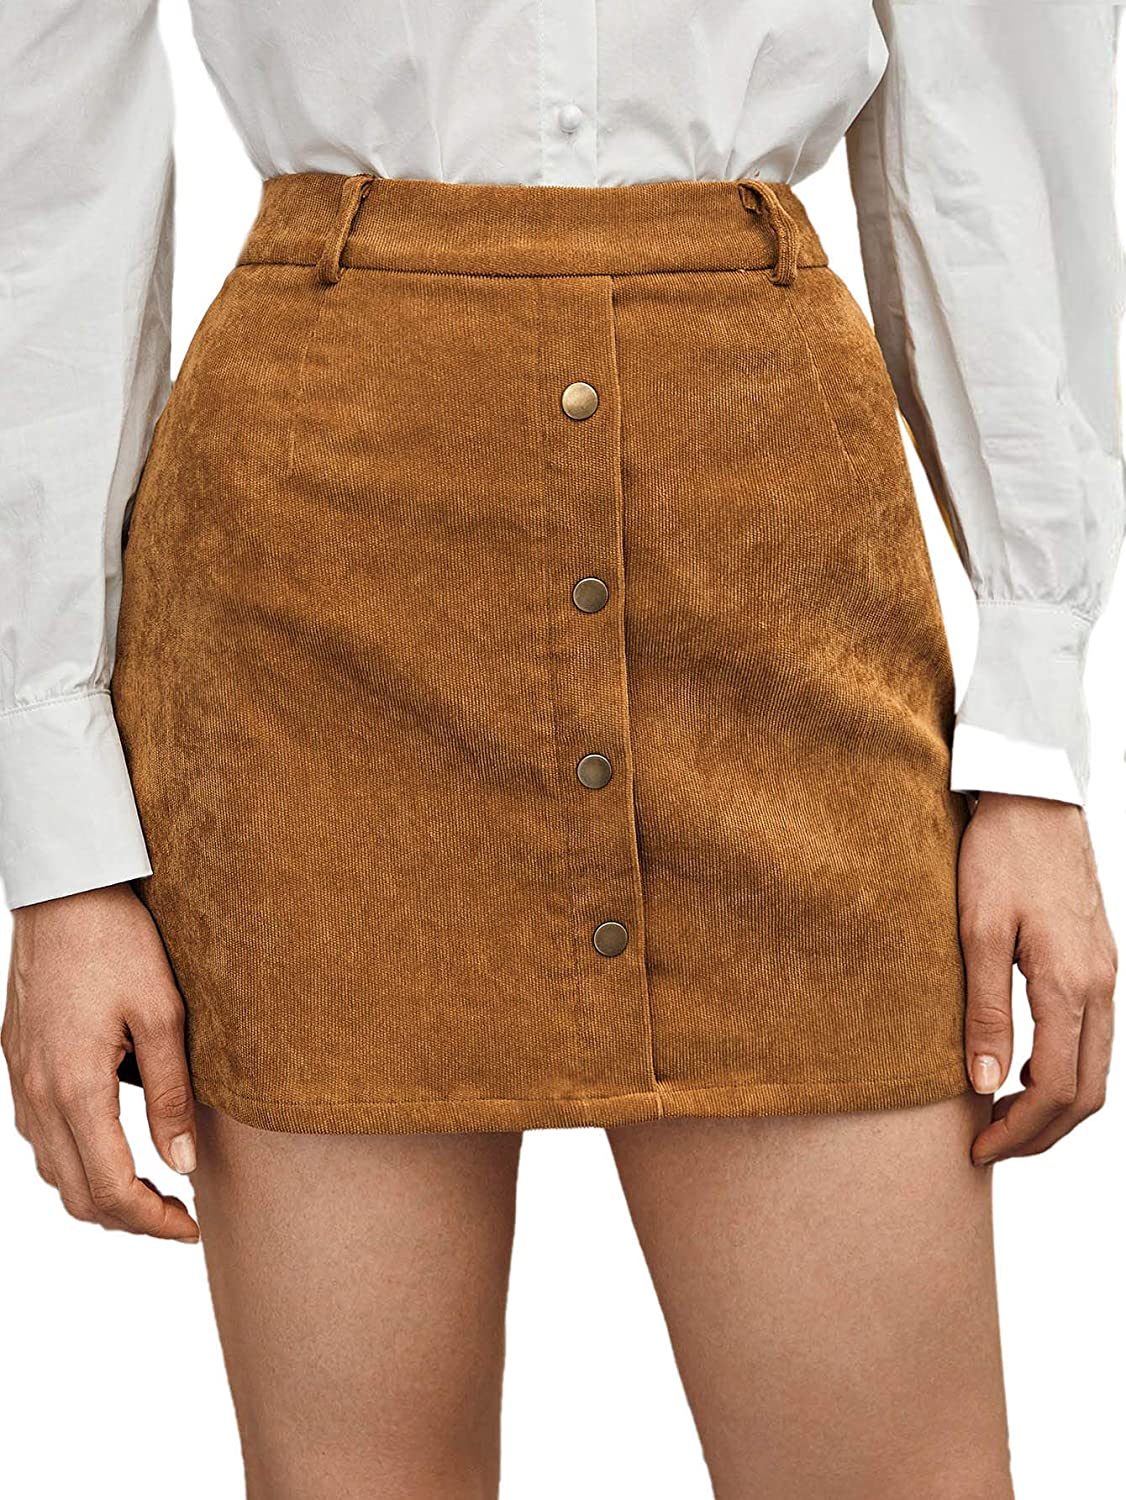 WDIRARA Women's Corduroy A-line Button Front Mid Waist Casual Mini Skirt